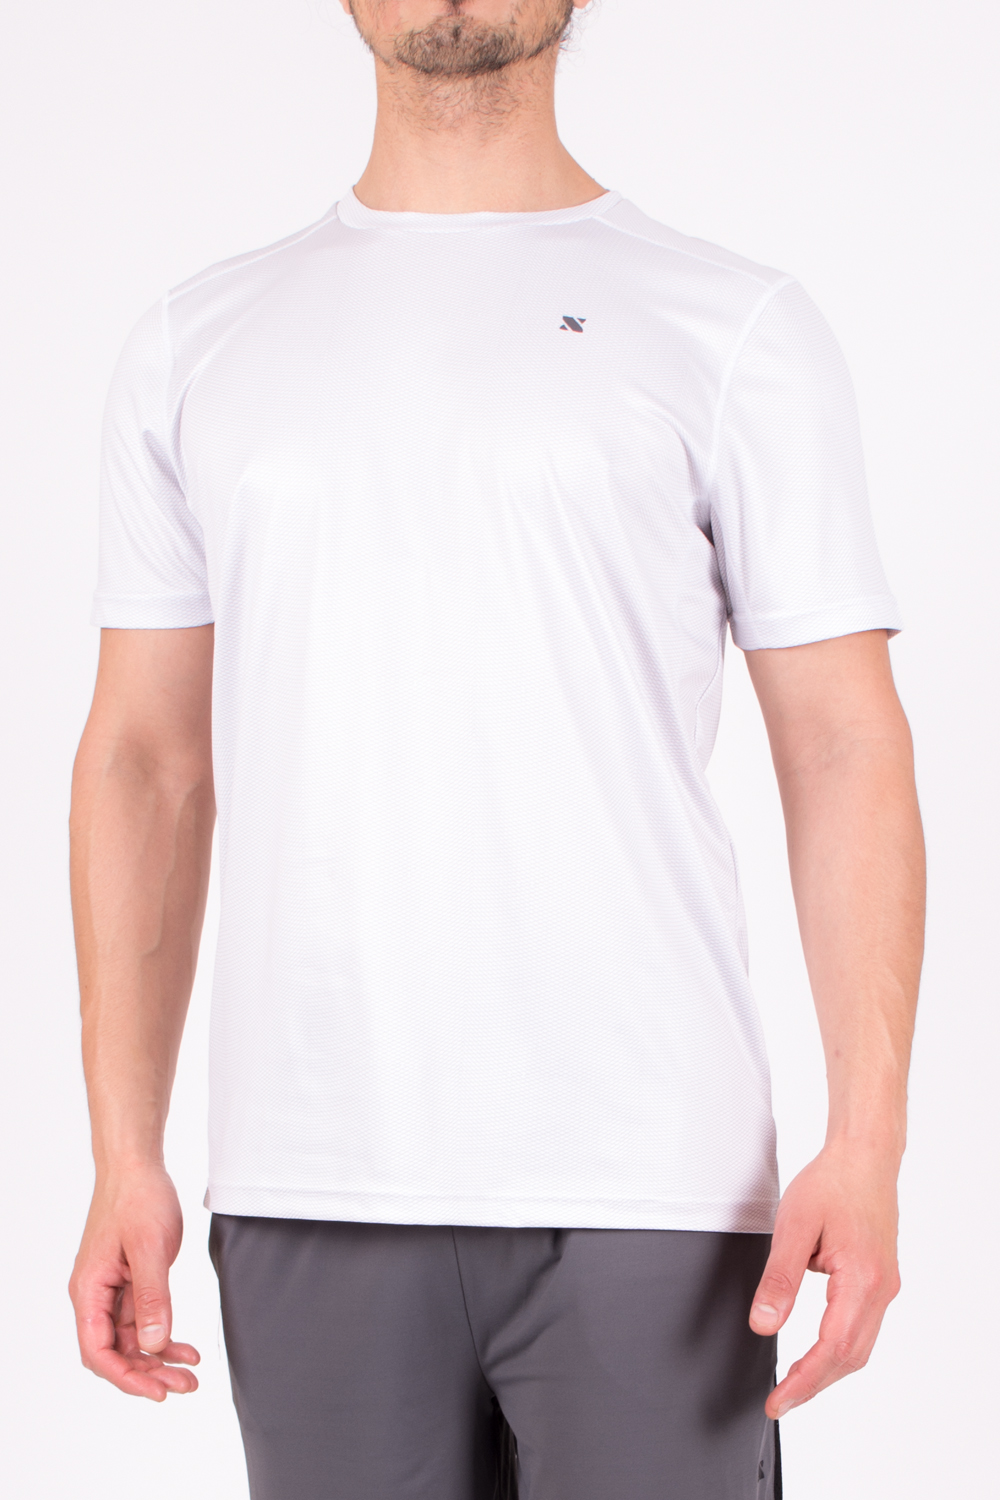 Fit-4XAK617_Front_White.jpg